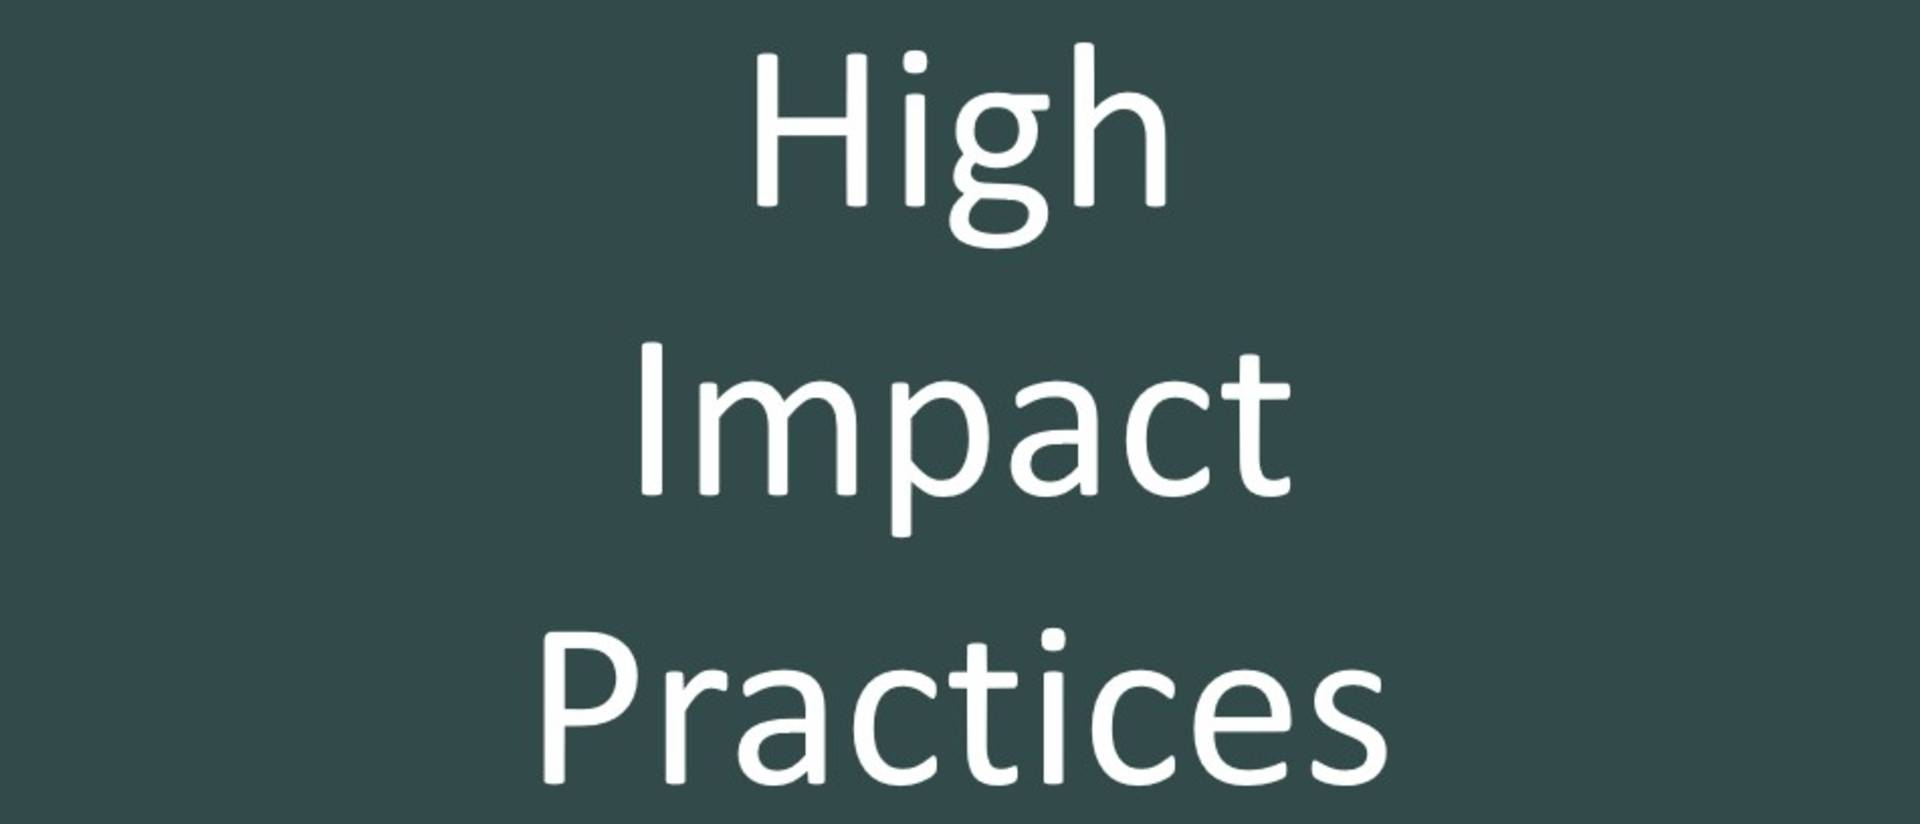 High Impact Practices